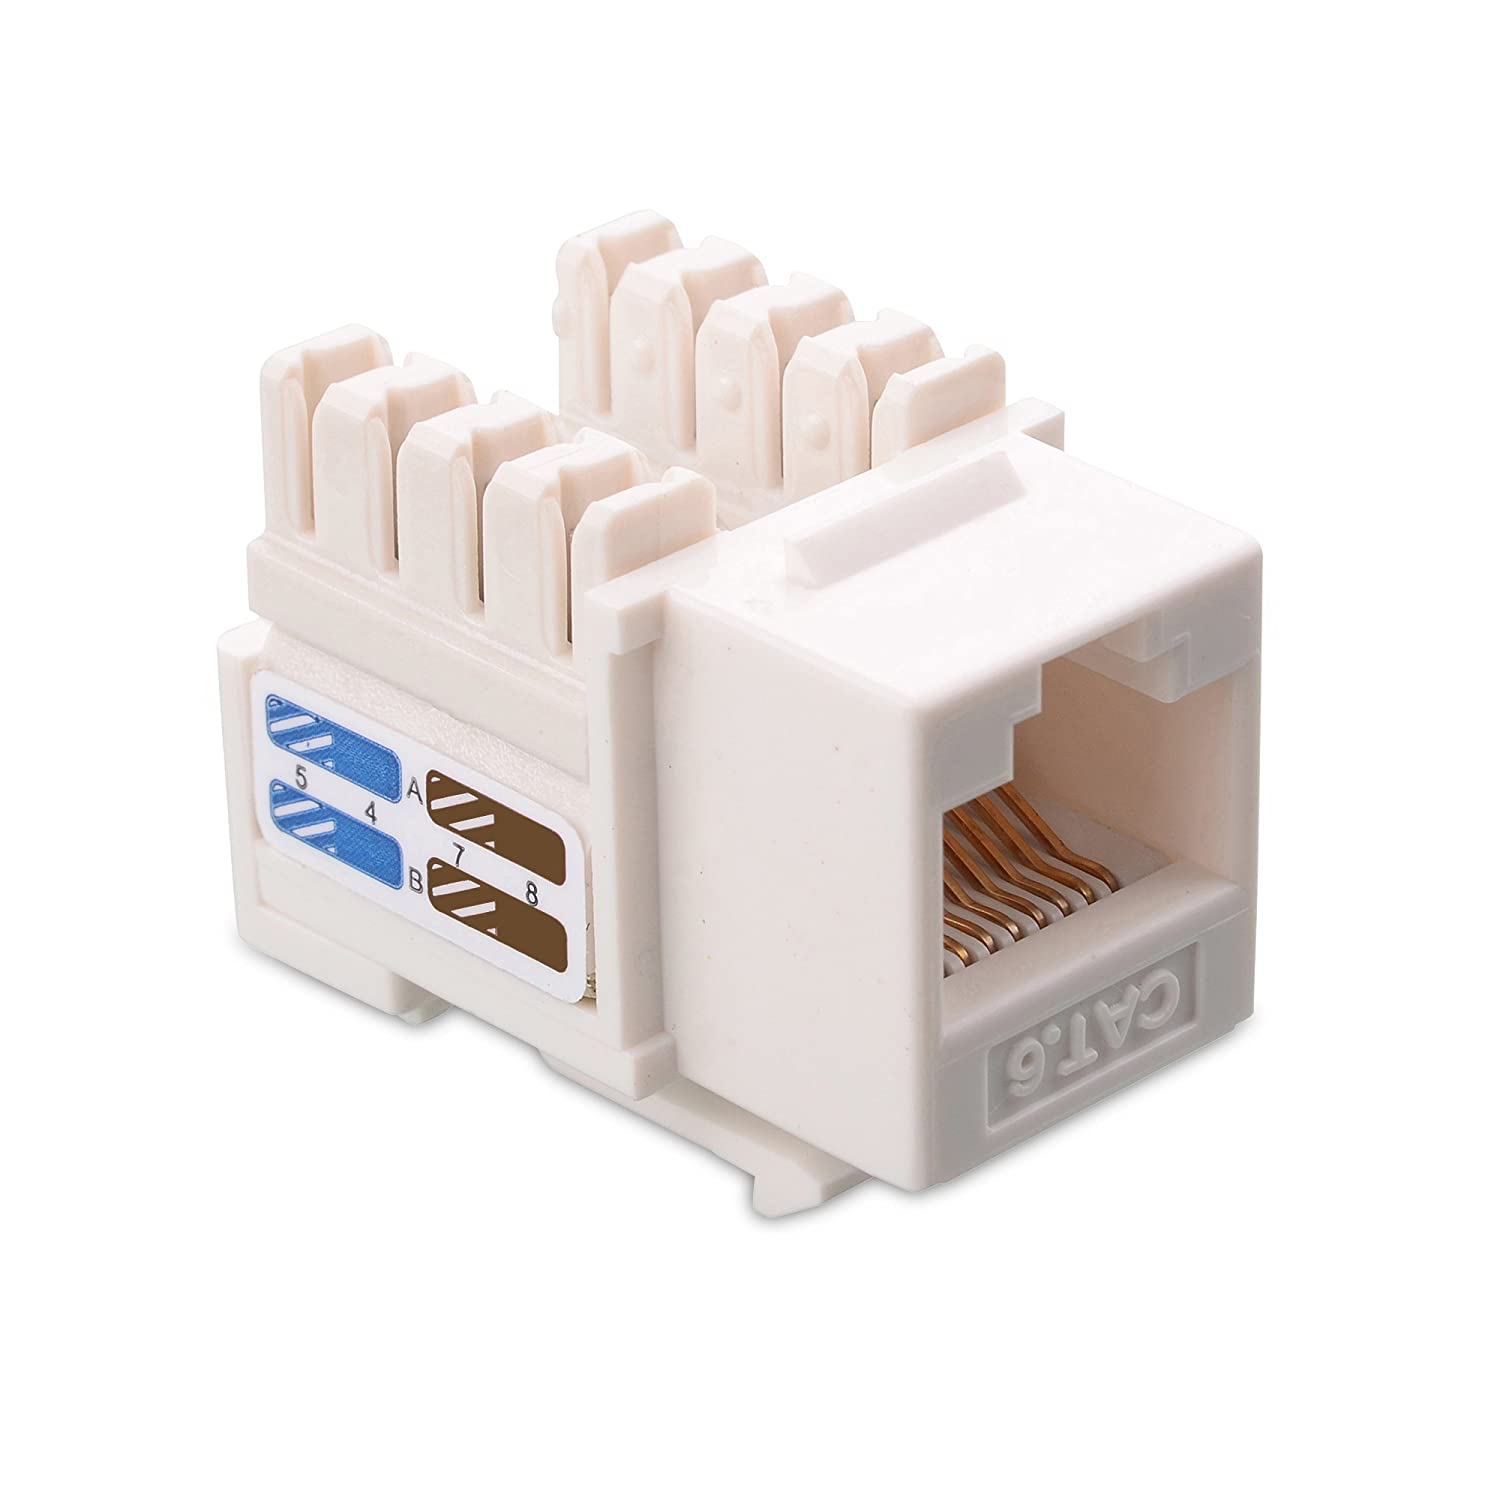 Cable Matters Ul Listed 25 Pack Cat6 Rj45 Keystone Network Color Code Colors Wiring Guide Diagram Tia Jack In White And Punch Down Stand Computers Accessories